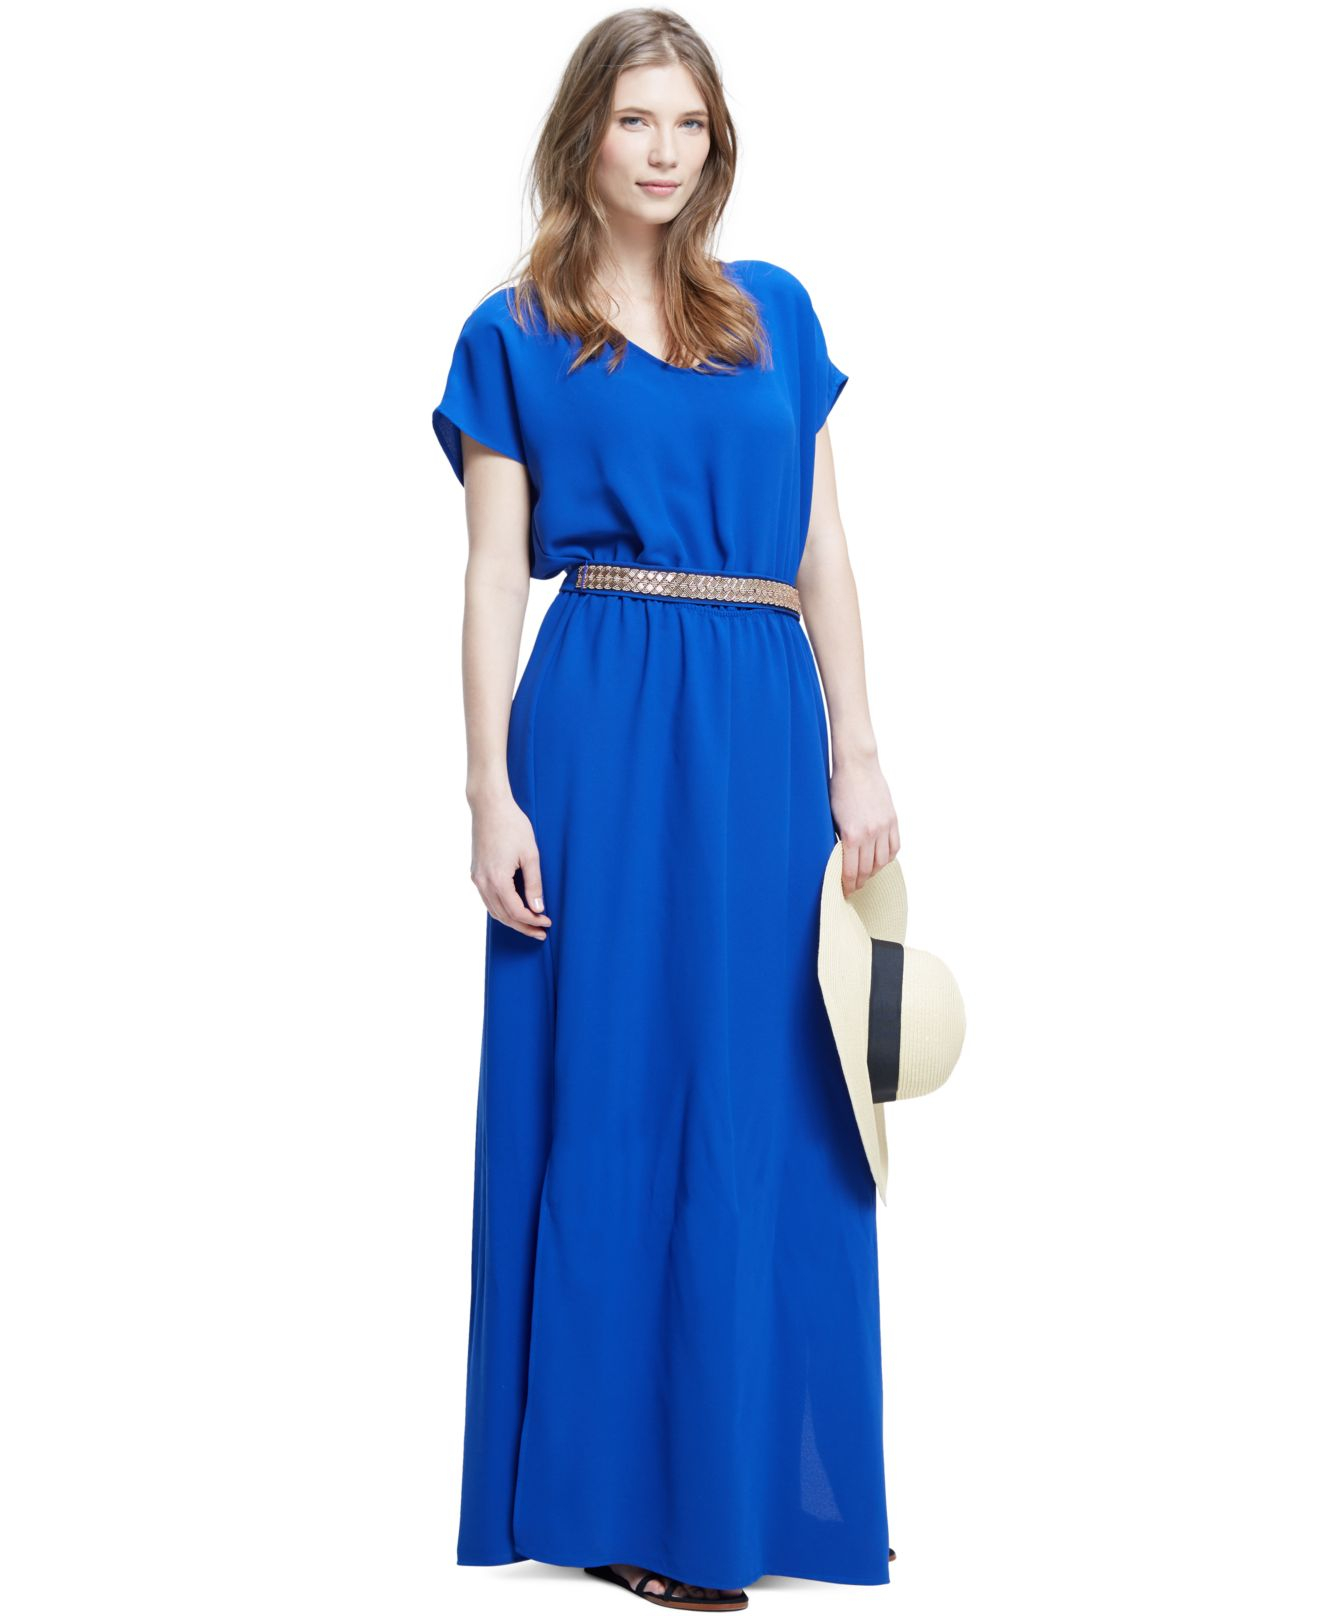 Lyst - Violeta by mango Plus Size Short-Sleeve Belted Maxi Dress ...